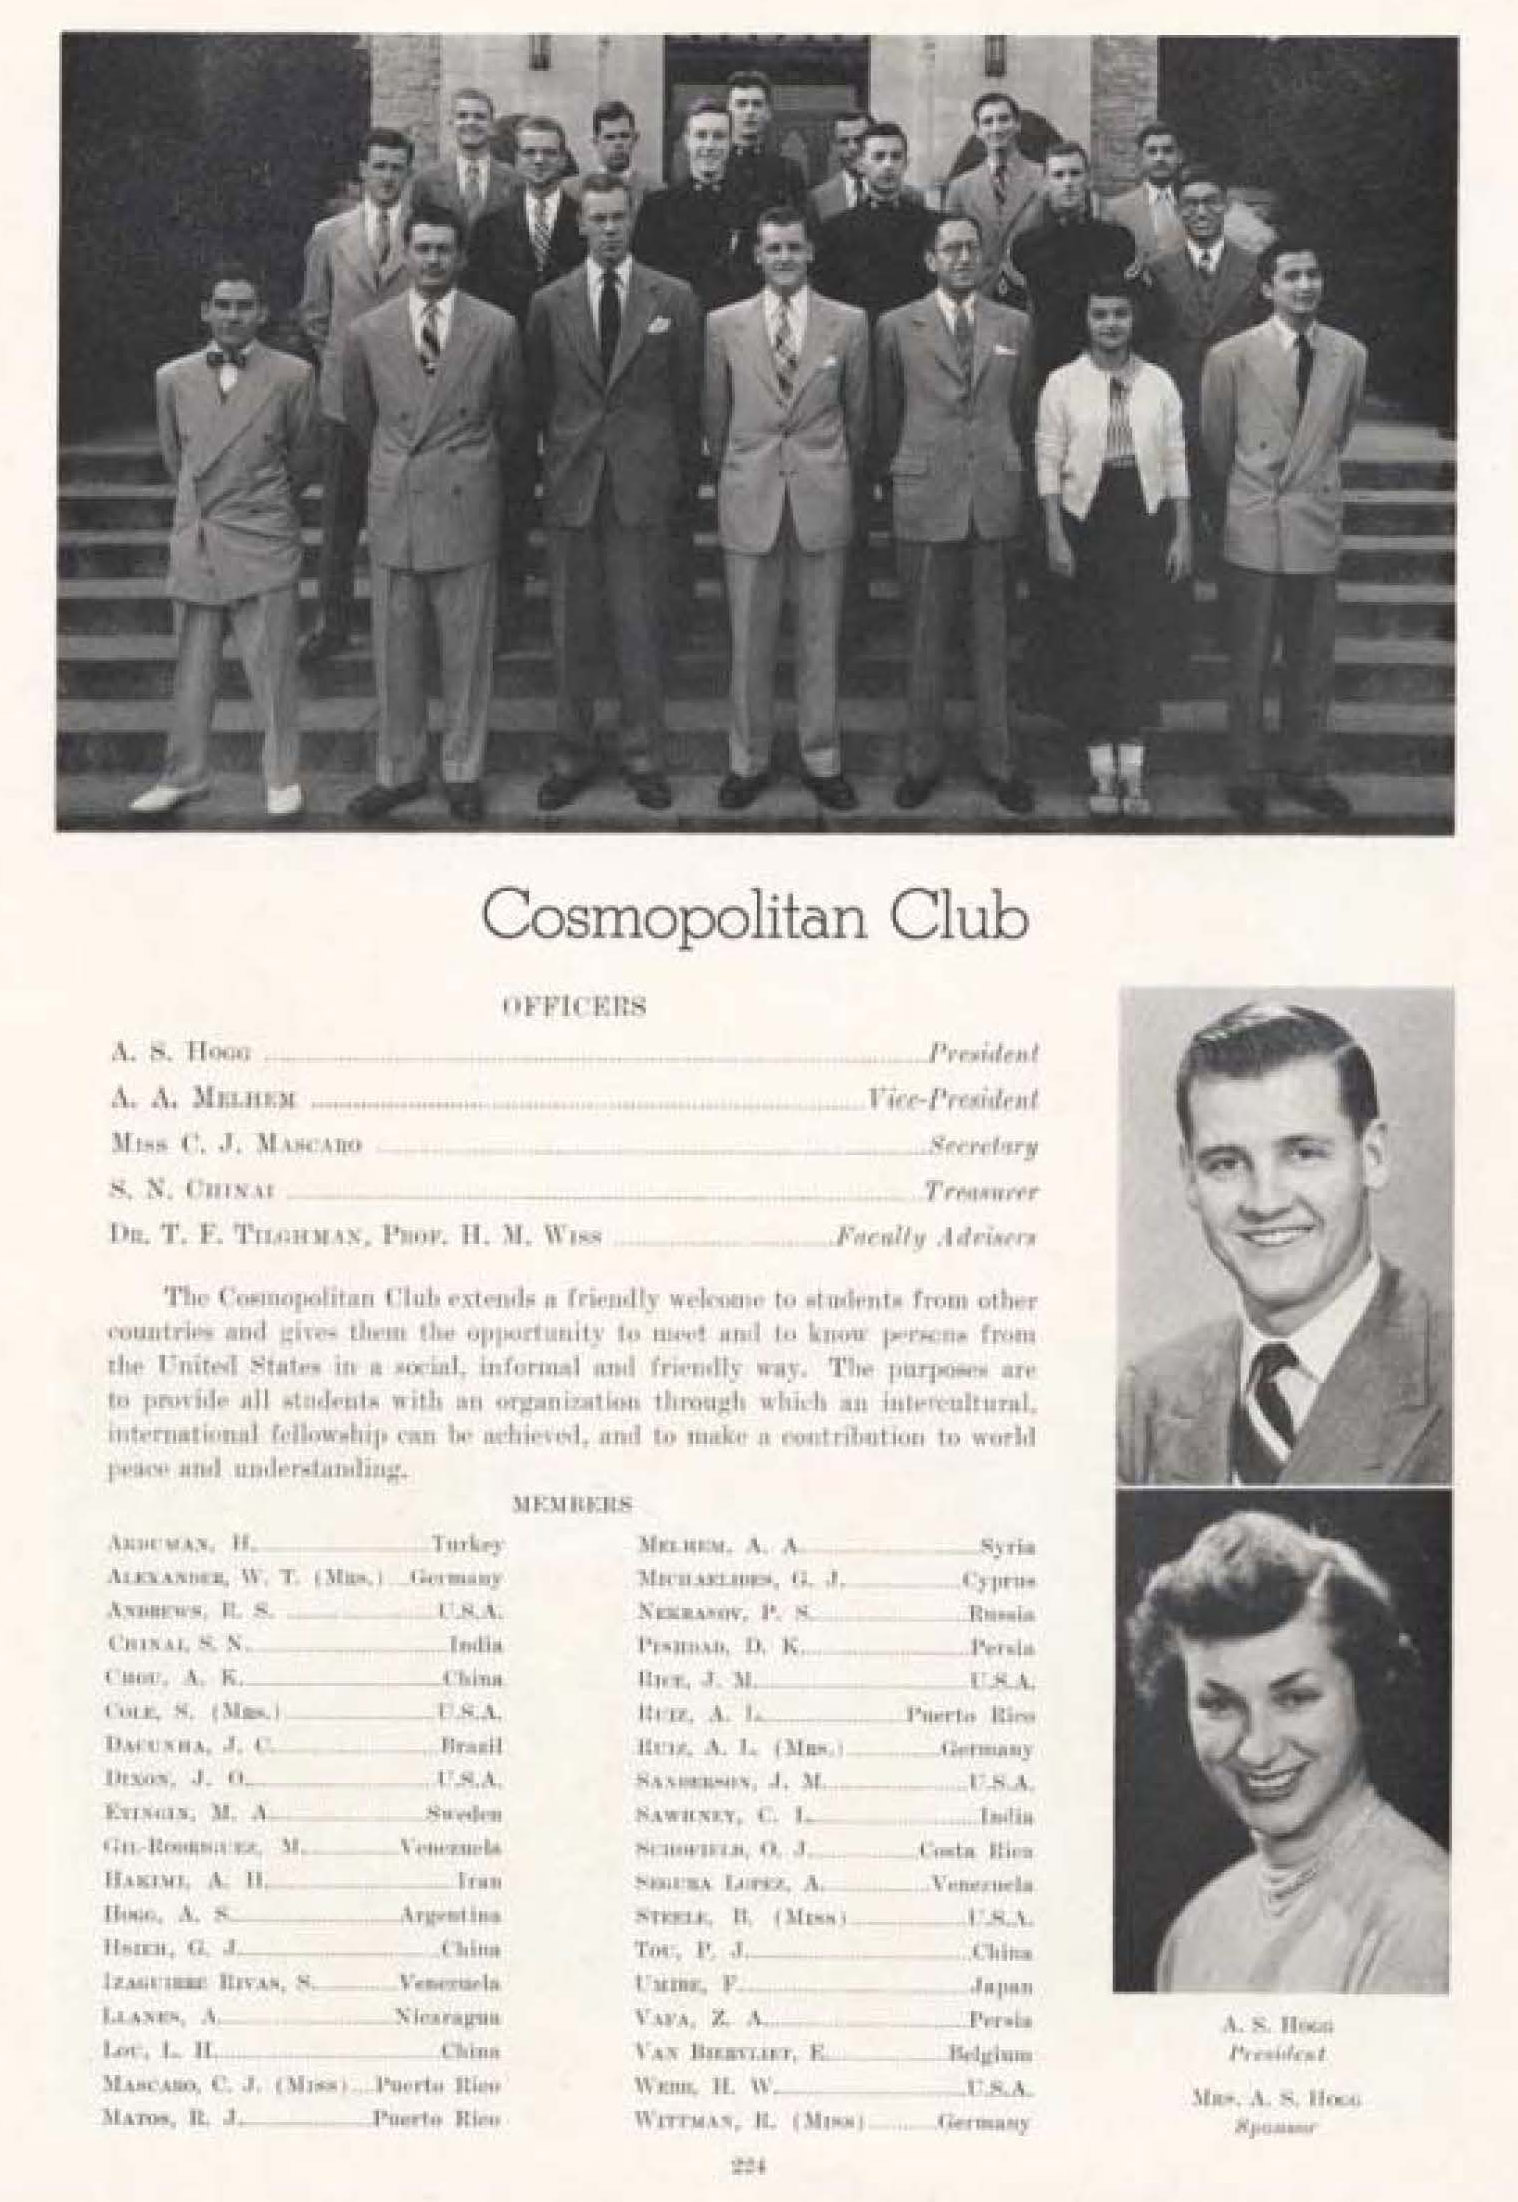 image of comopolitan club and list of members